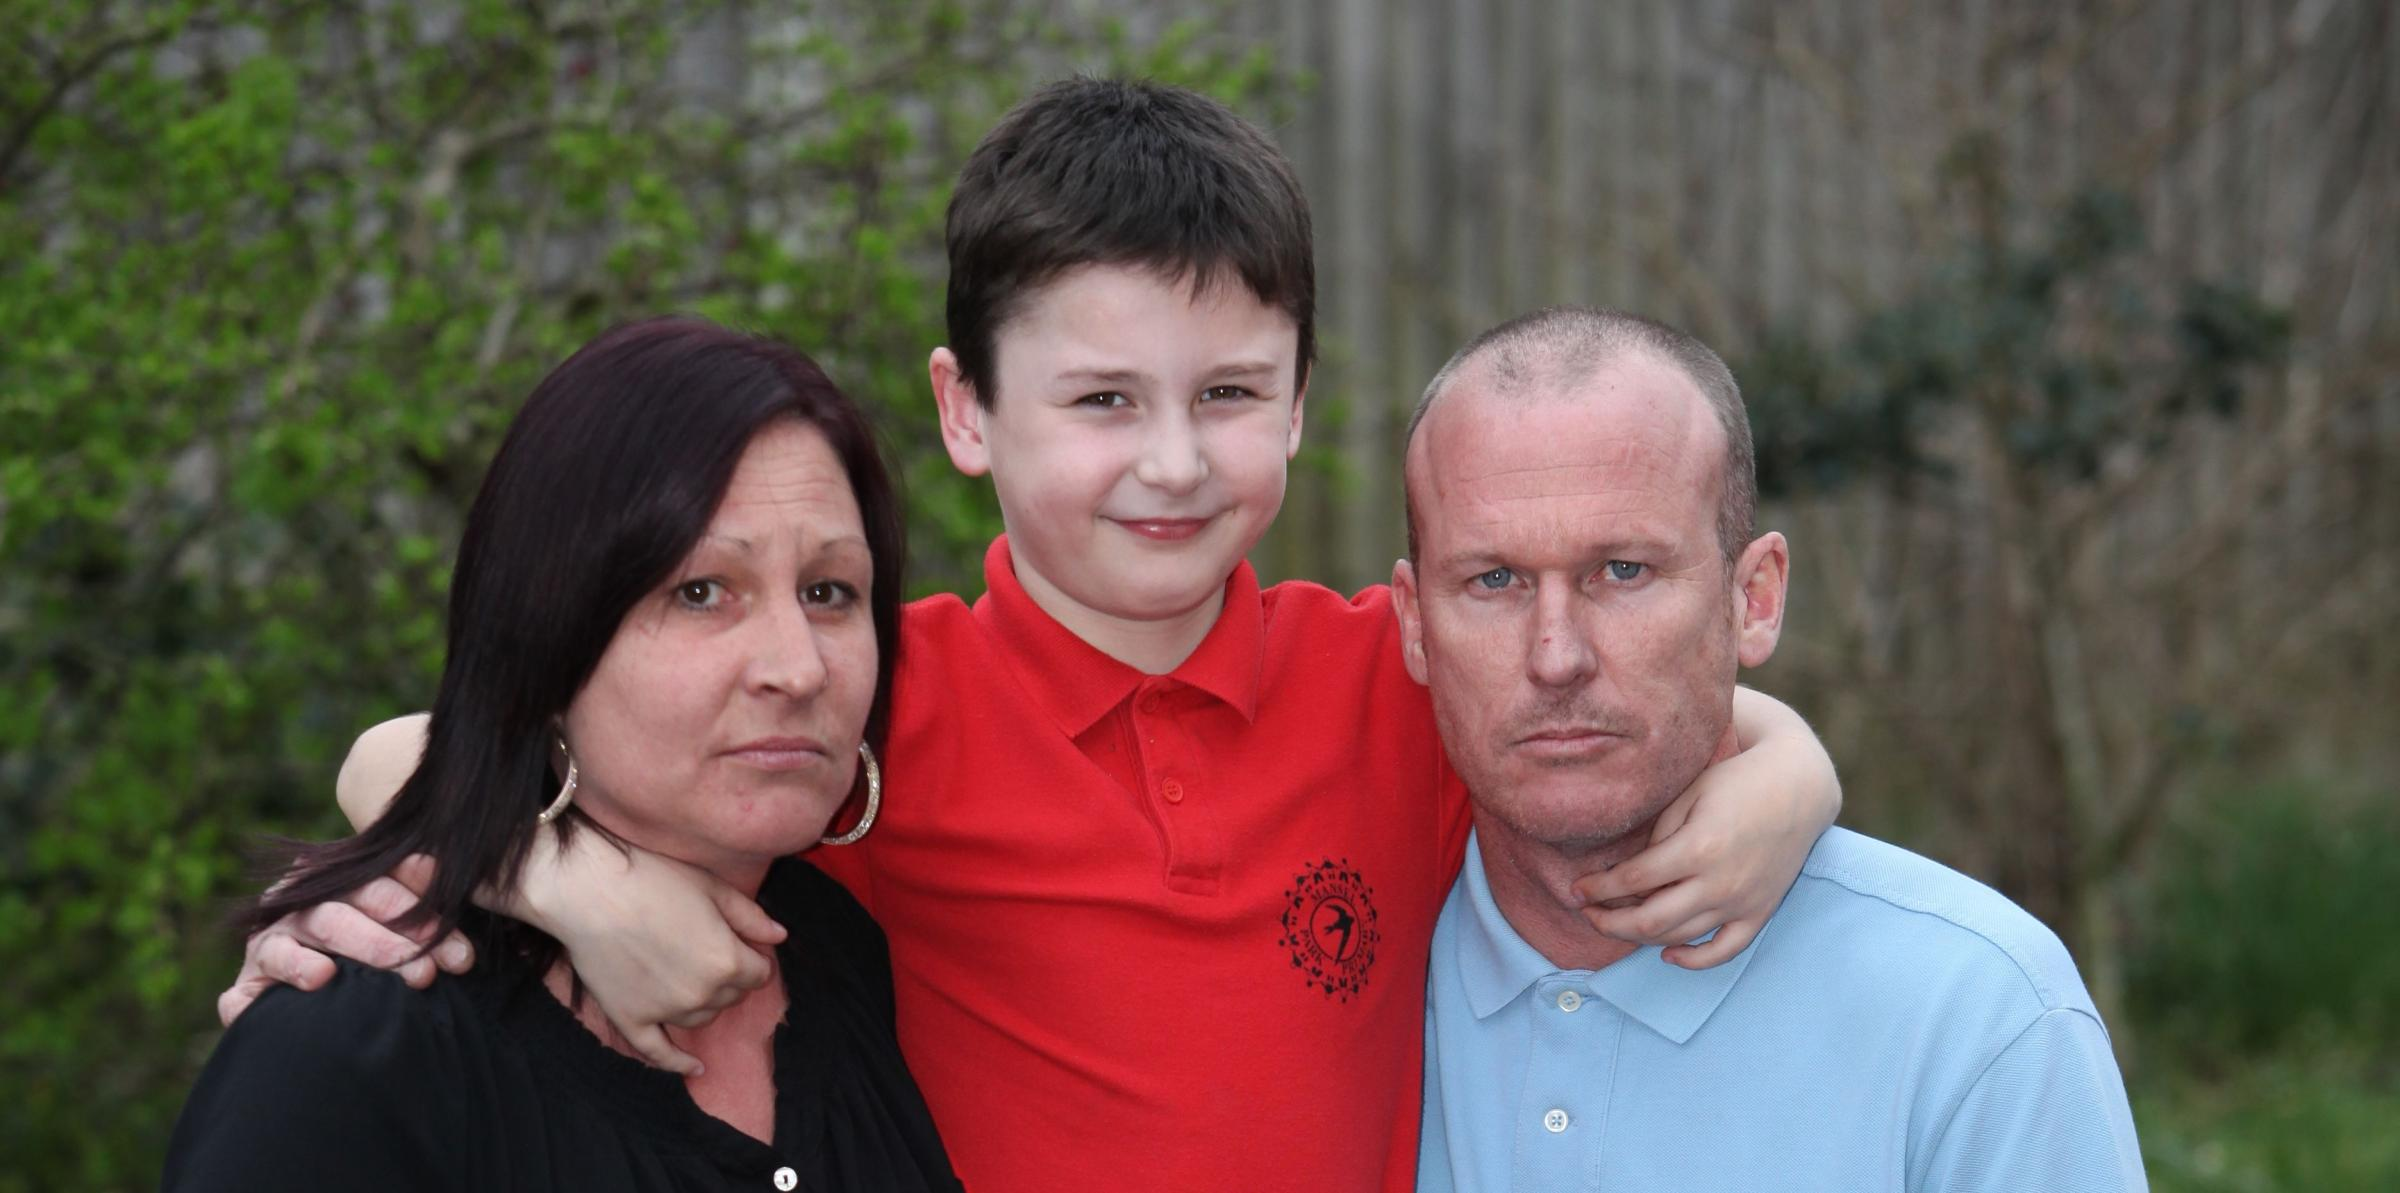 Eight-year-old Zack Harrison with parents Kelly and Ian